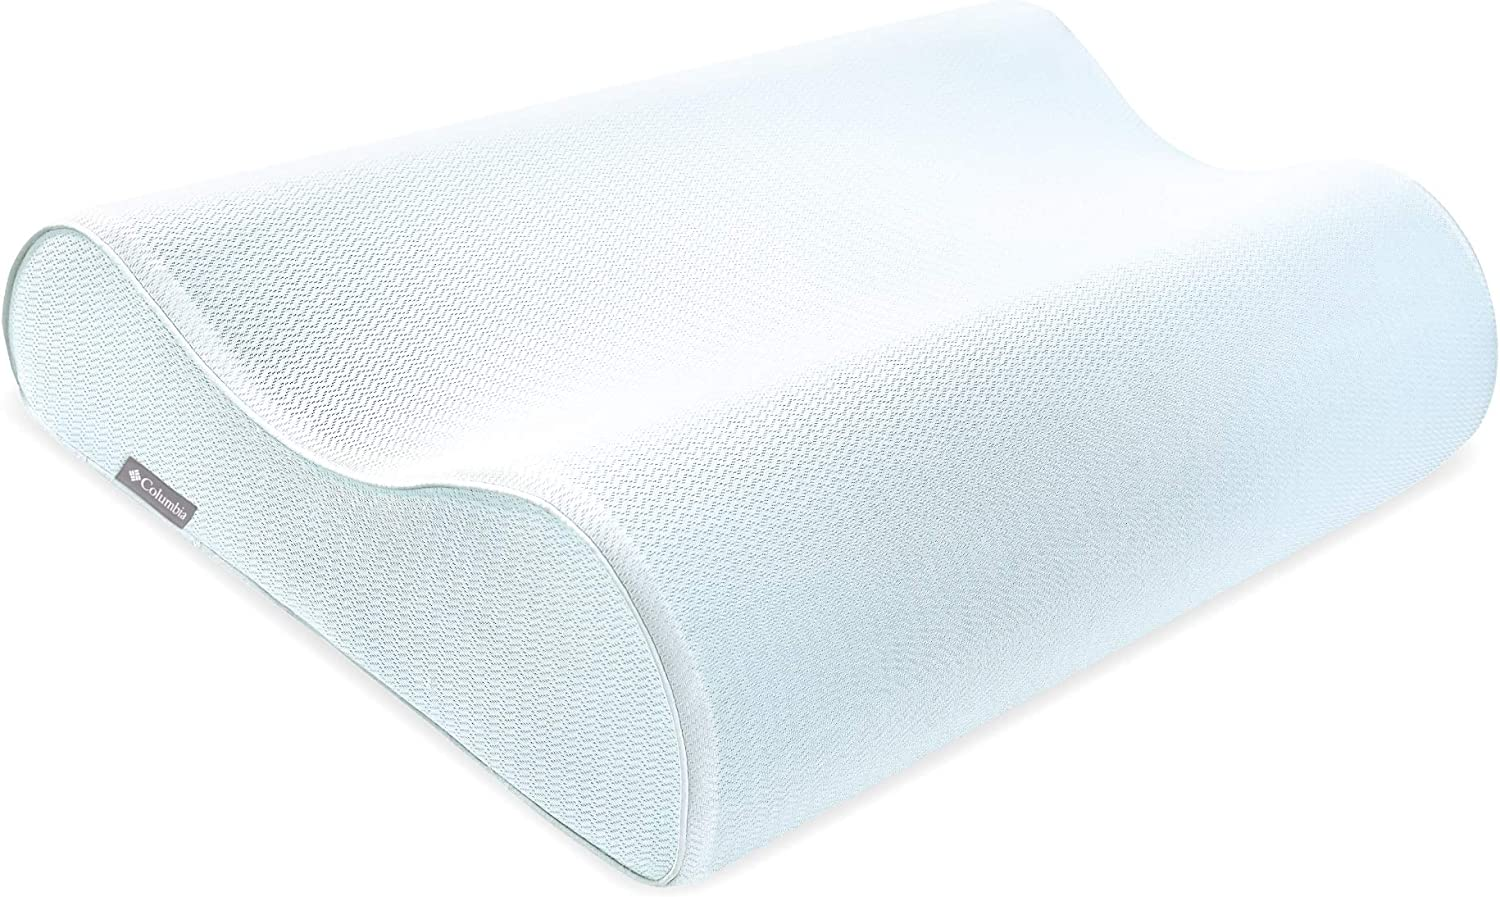 Columbia Ultimate Contour Performance Gel-Infused Memory Foam Pillow - Maximum Airflow - Dual Heights - Omni-Wick Moisture Wicking Tech - Cradling Support for All Sleep Positions - Standard/Queen